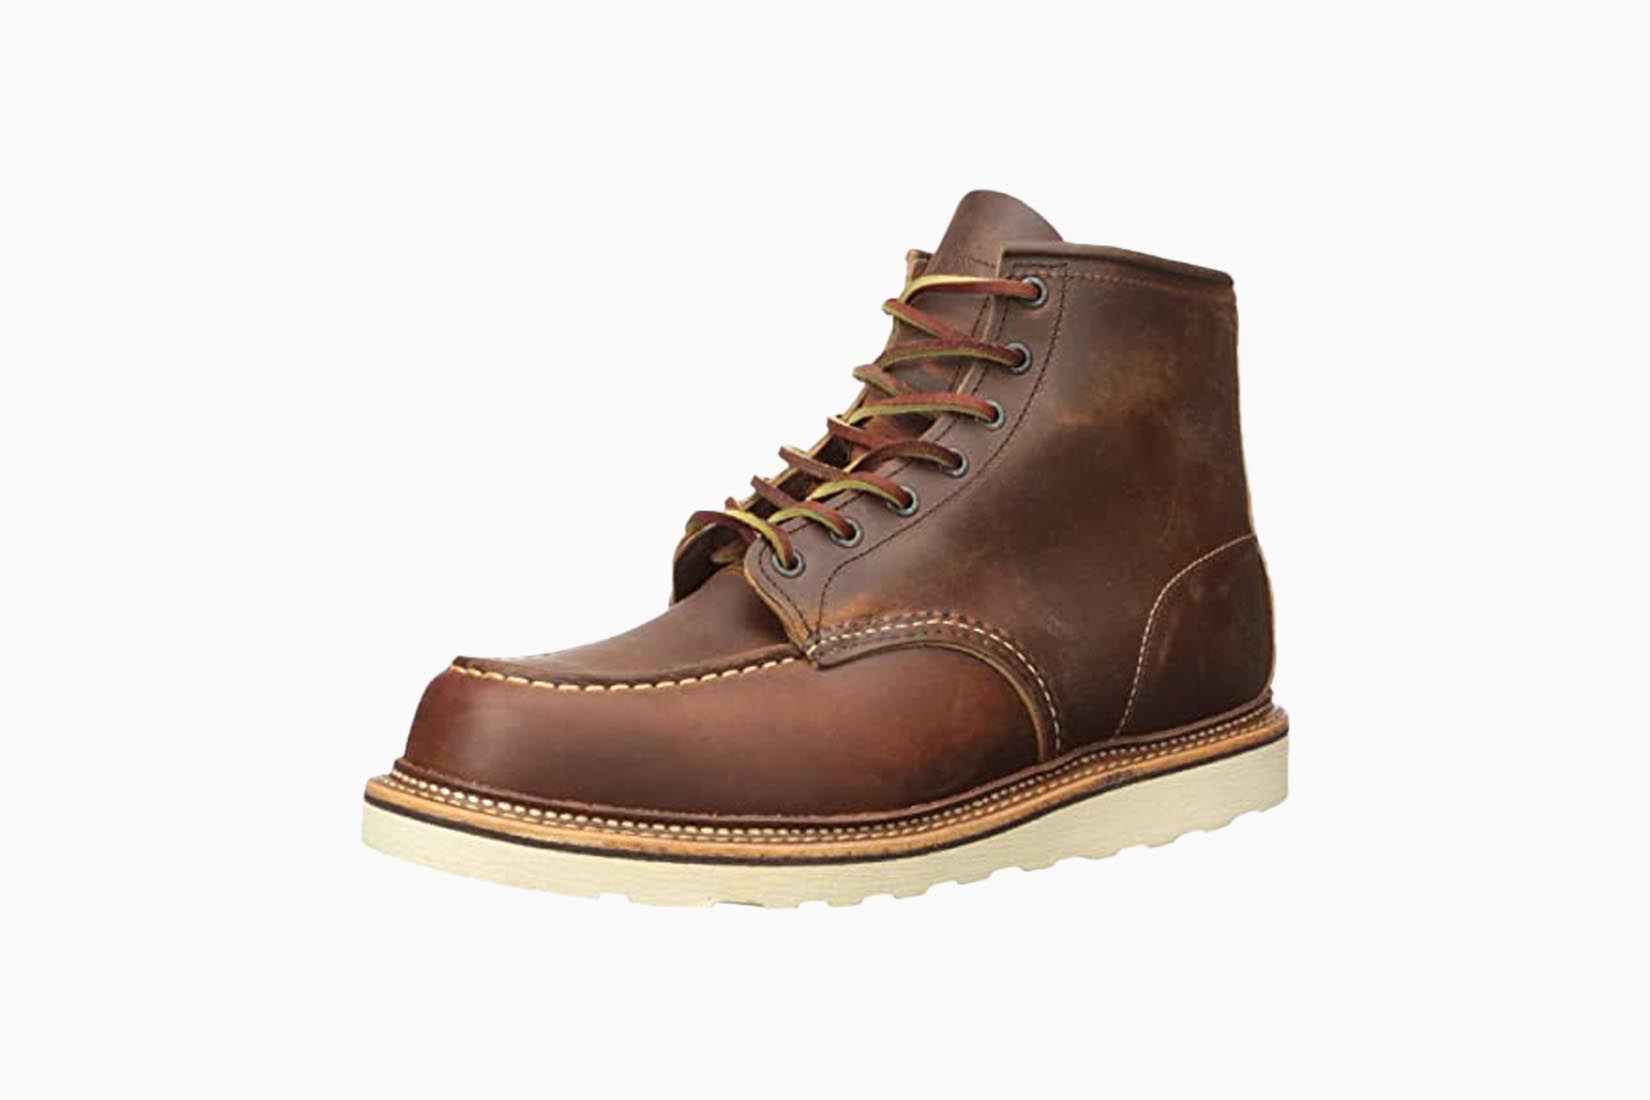 best boots men red wing heritage classic boot review Luxe Digital